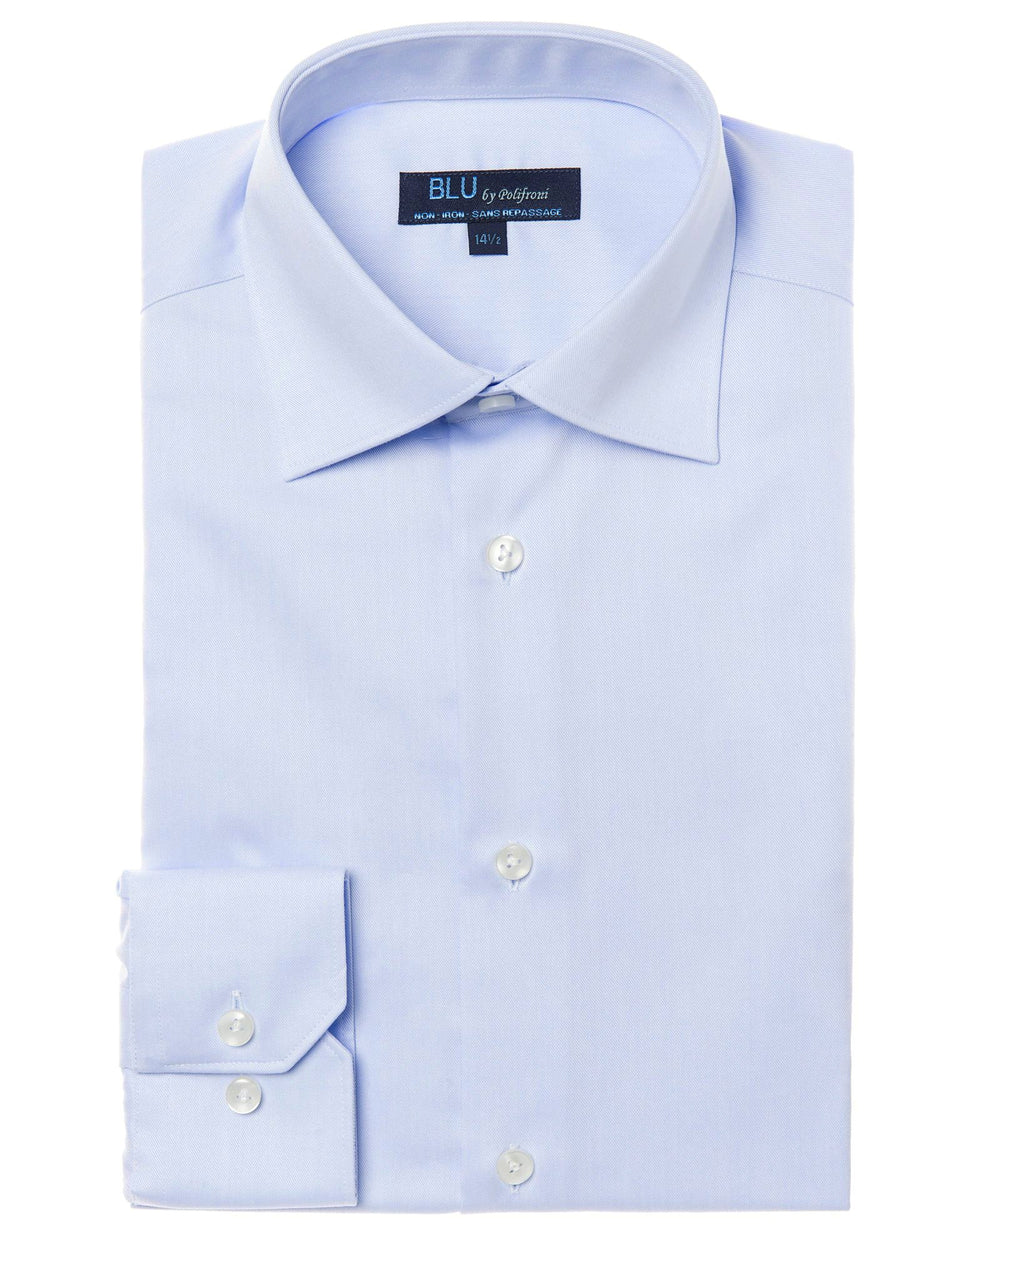 BLU by Polifroni Sky Blue dress shirt, non-iron